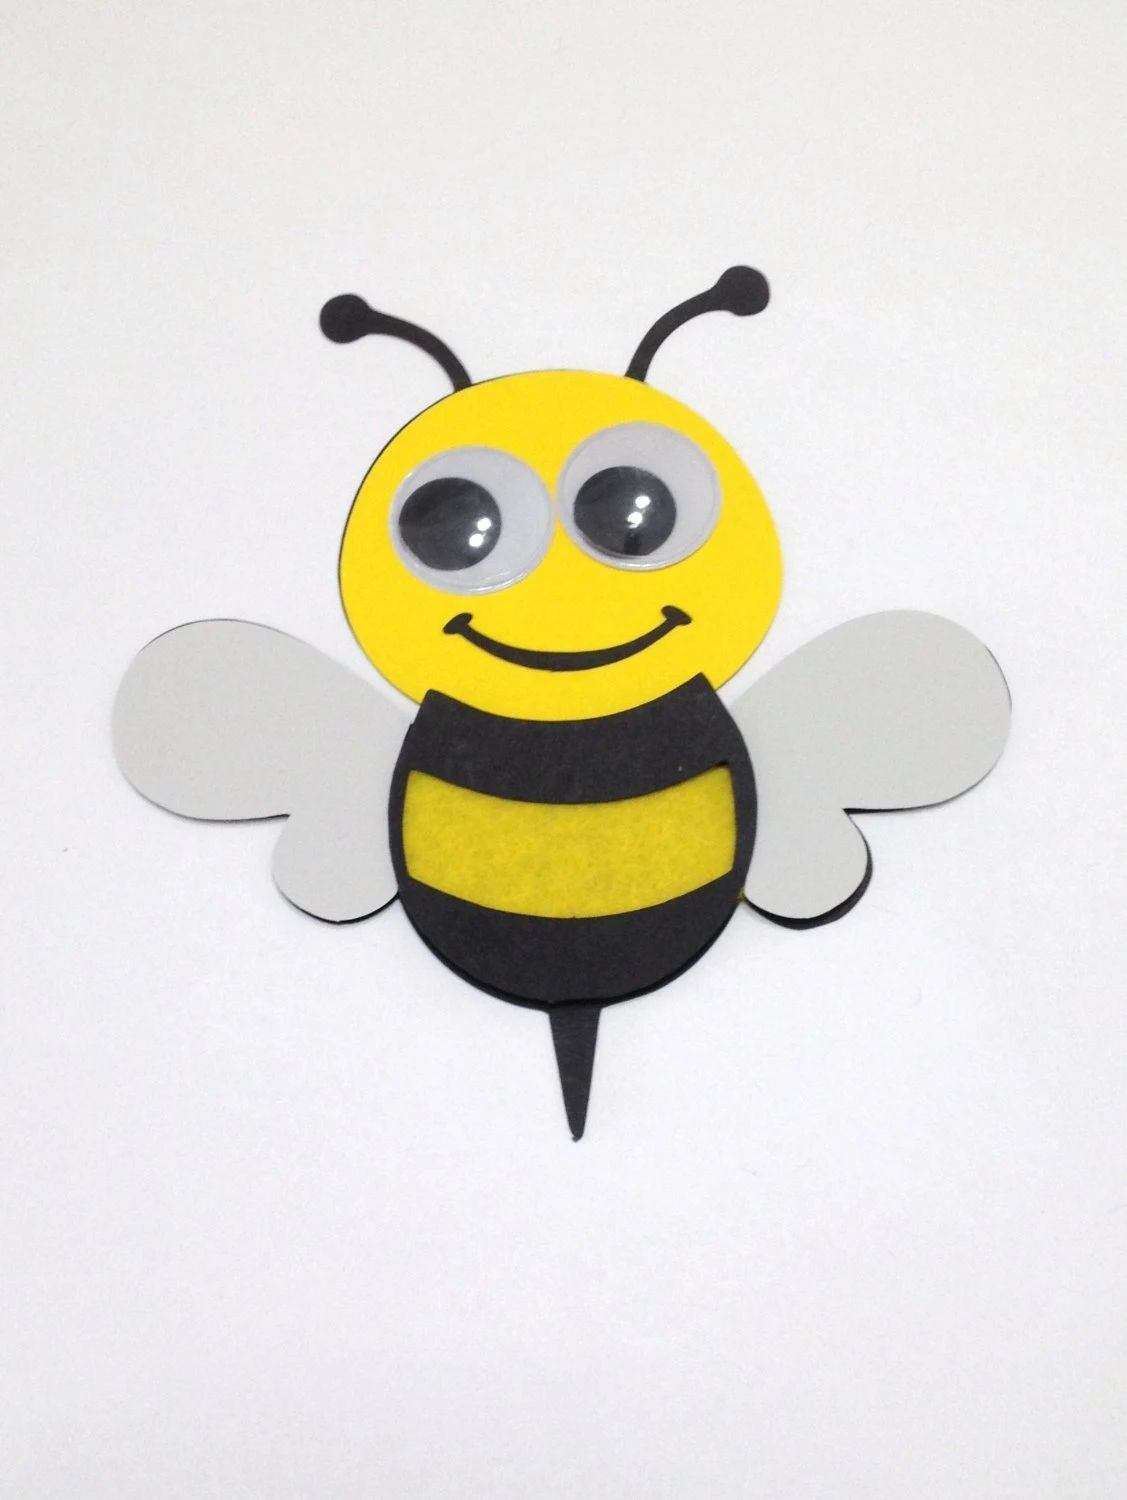 Craft bumble bee bumble bees for crafts craft bumble bees zoom